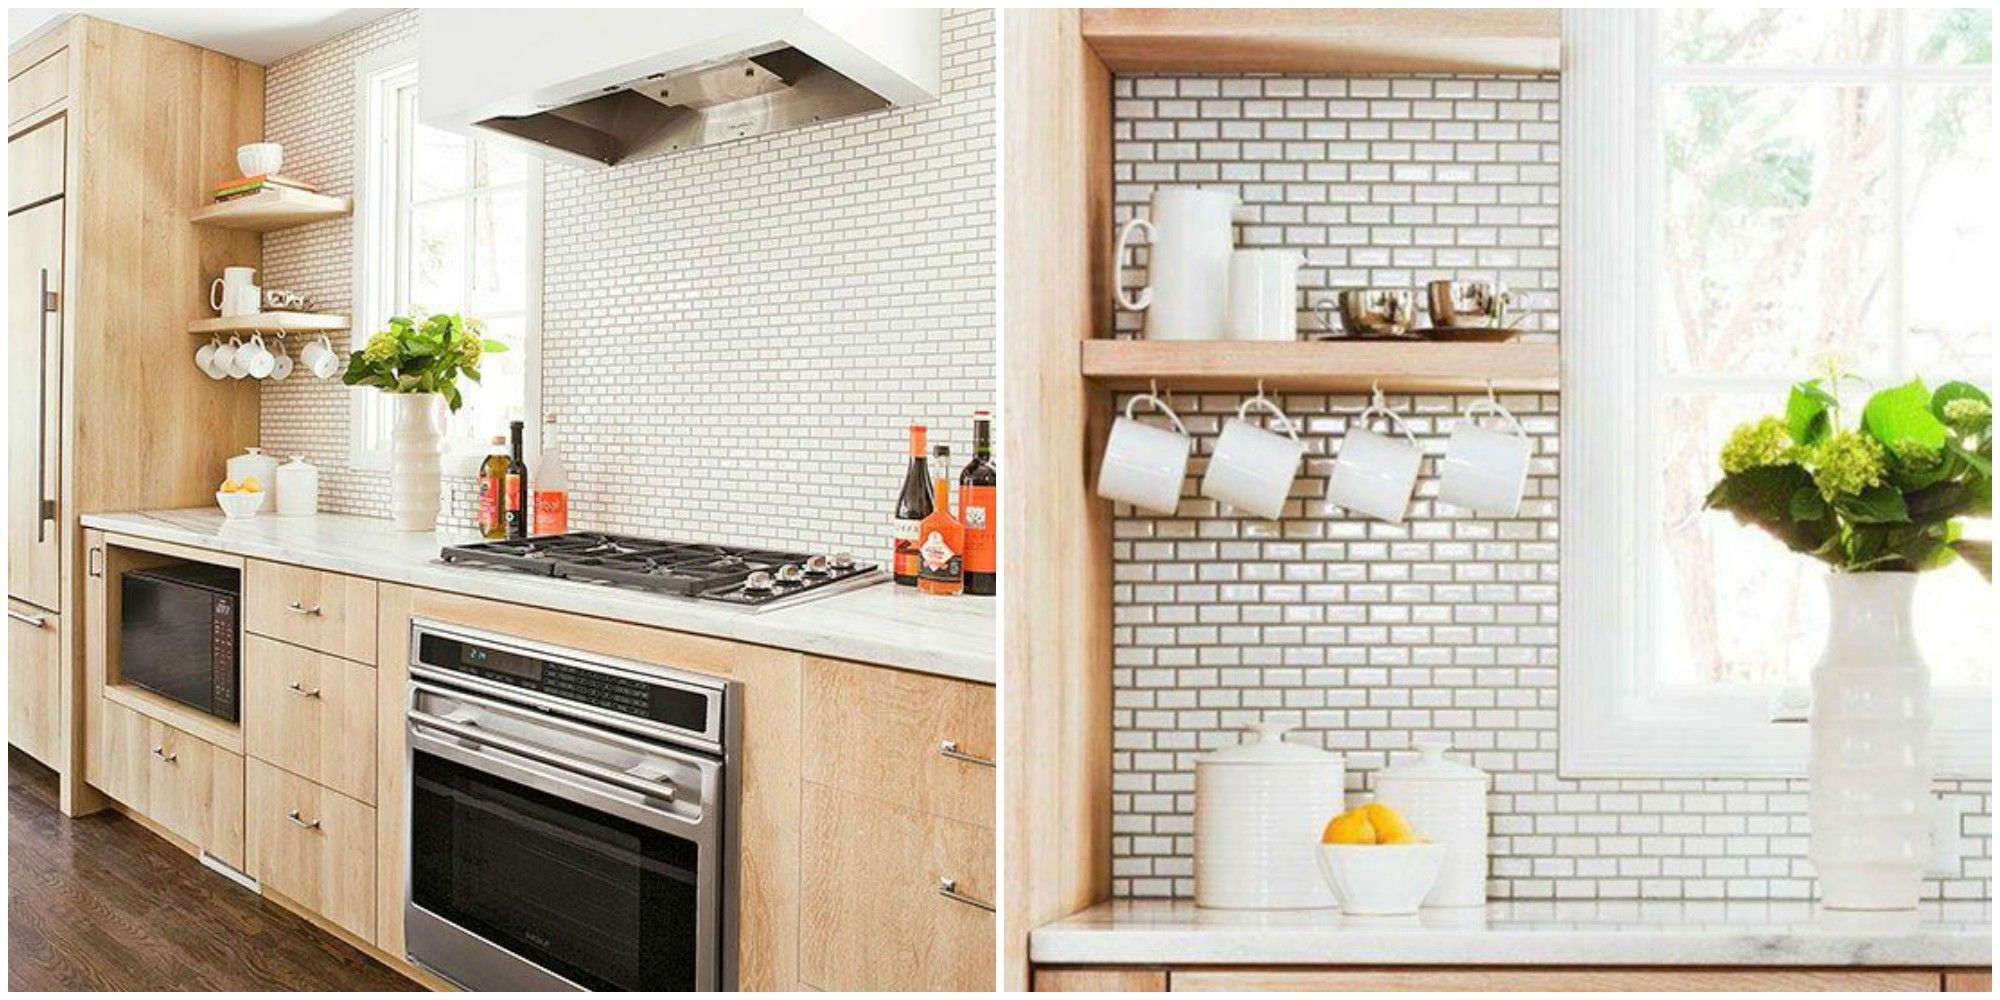 Mini Subway Tiles Are The Cutest Home Trend Youll See This Year - Best place to buy subway tile